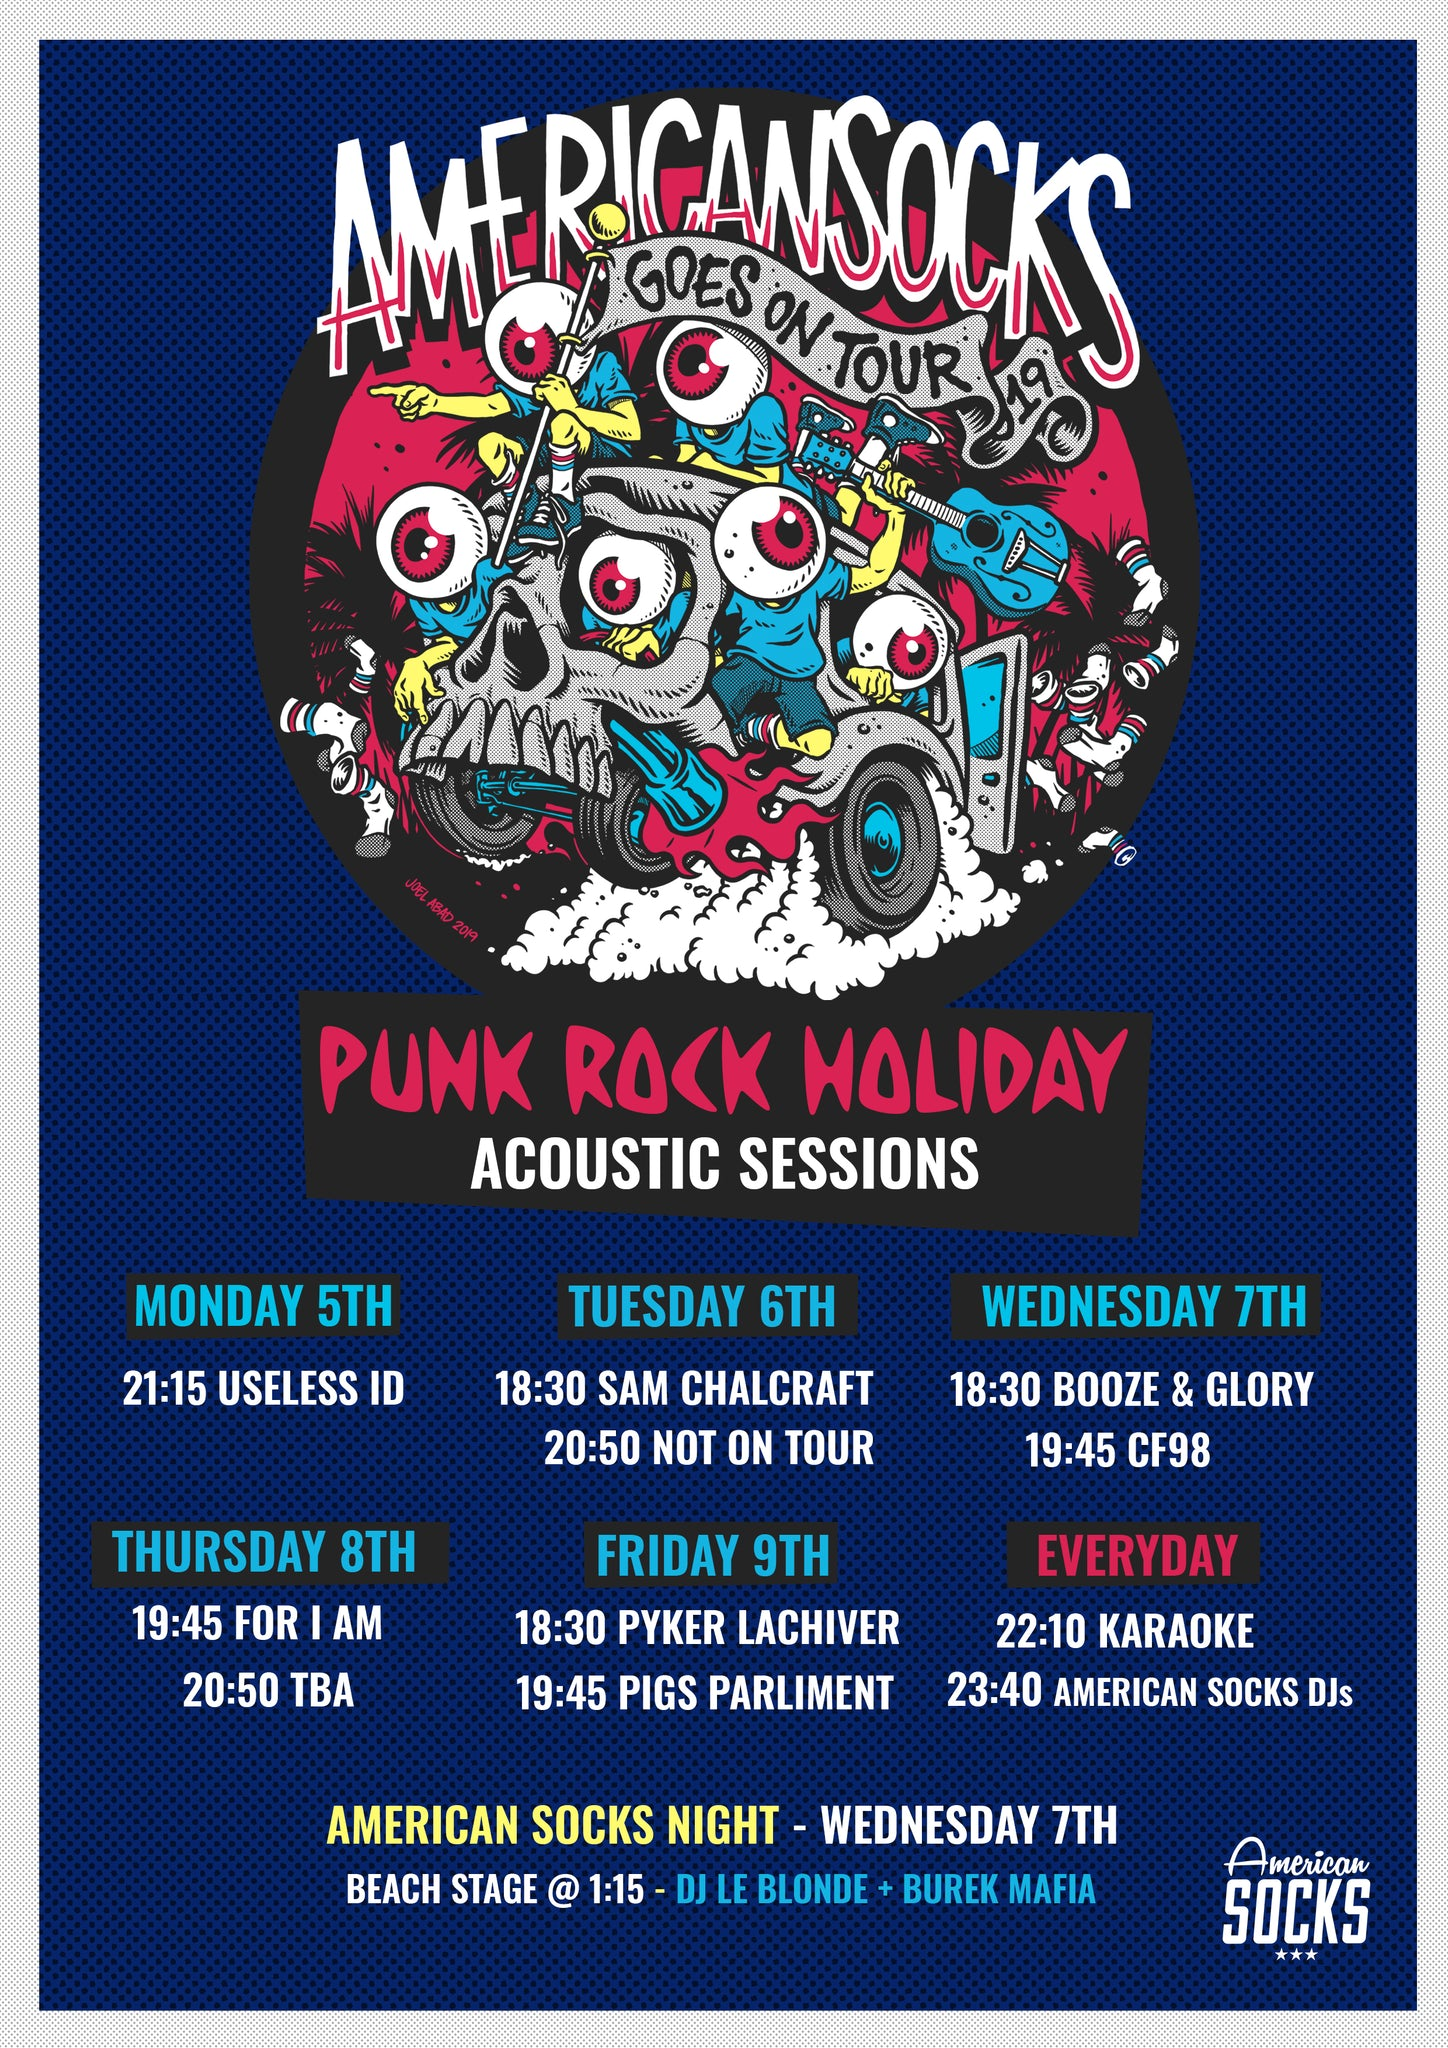 american socks punk rock holiday acoustics 2019 americansocks prh